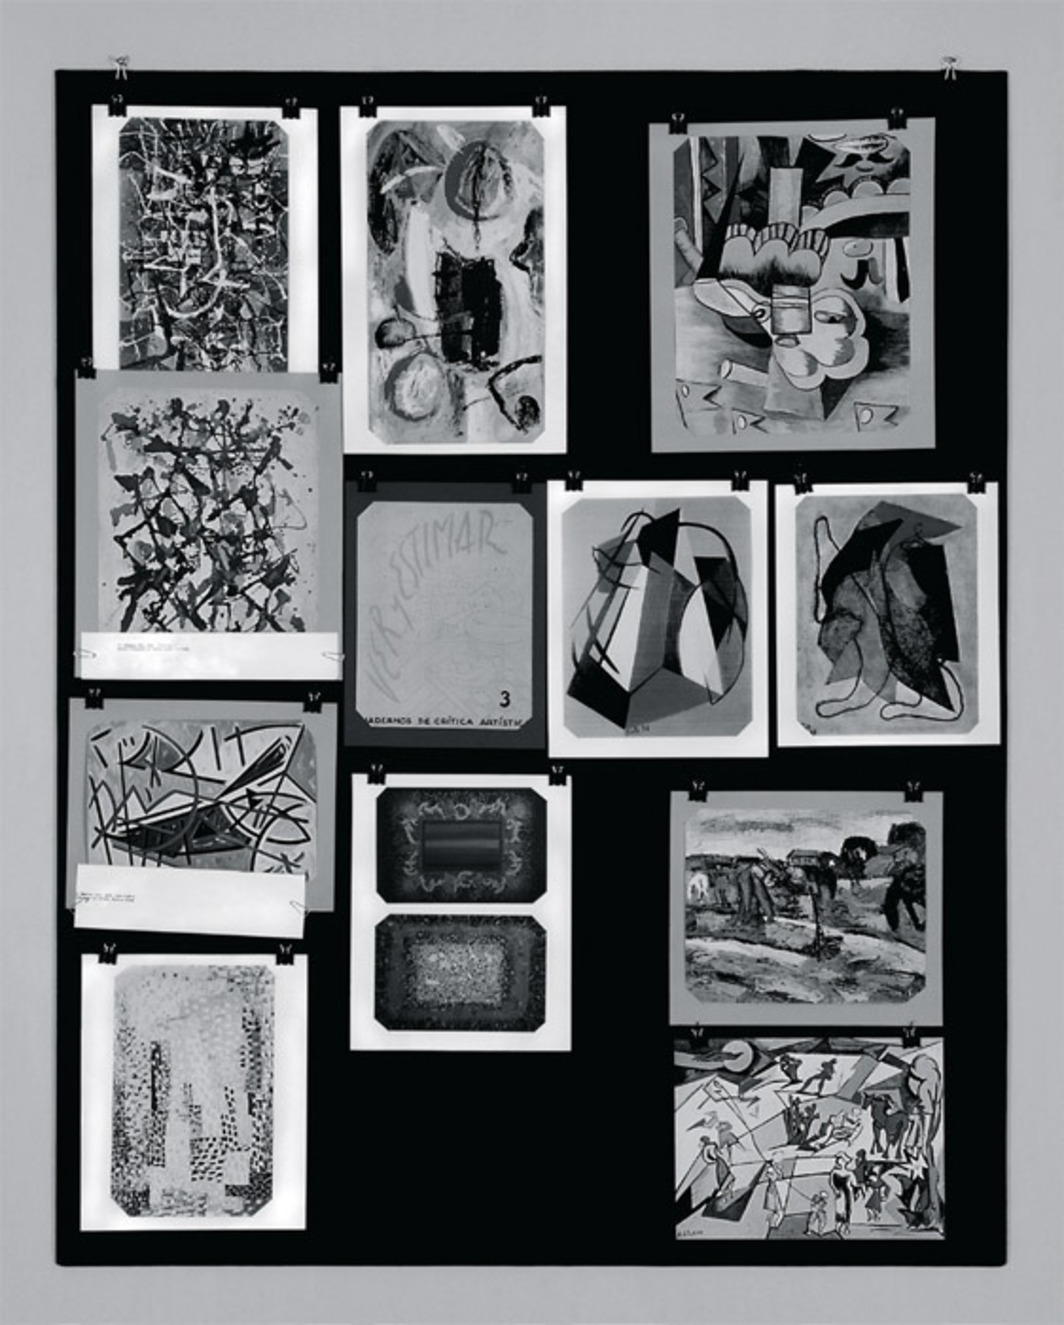 "Santiago Villanueva, Panel 1, 2012, ink-jet prints on illustration paper, 27 1/2 x 19 5/8""."